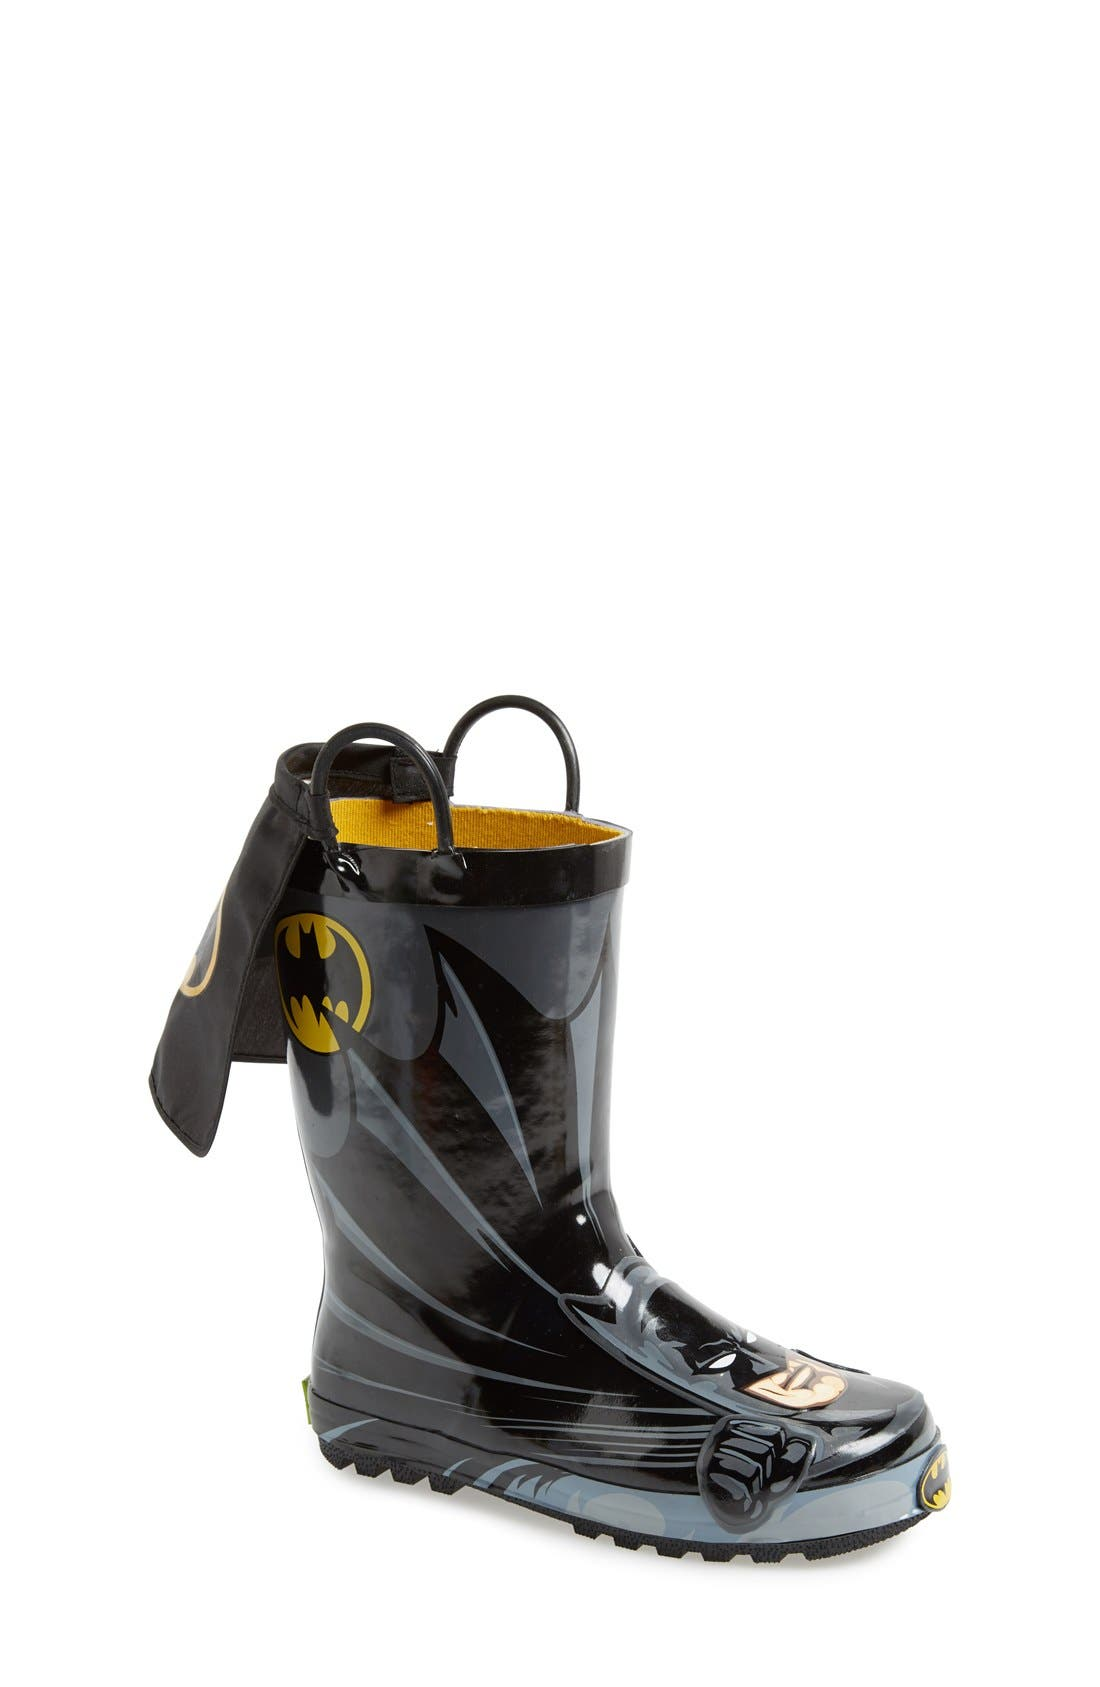 WESTERN CHIEF Batman Everlasting Waterproof Rain Boot, Main, color, BLACK/ BLACK